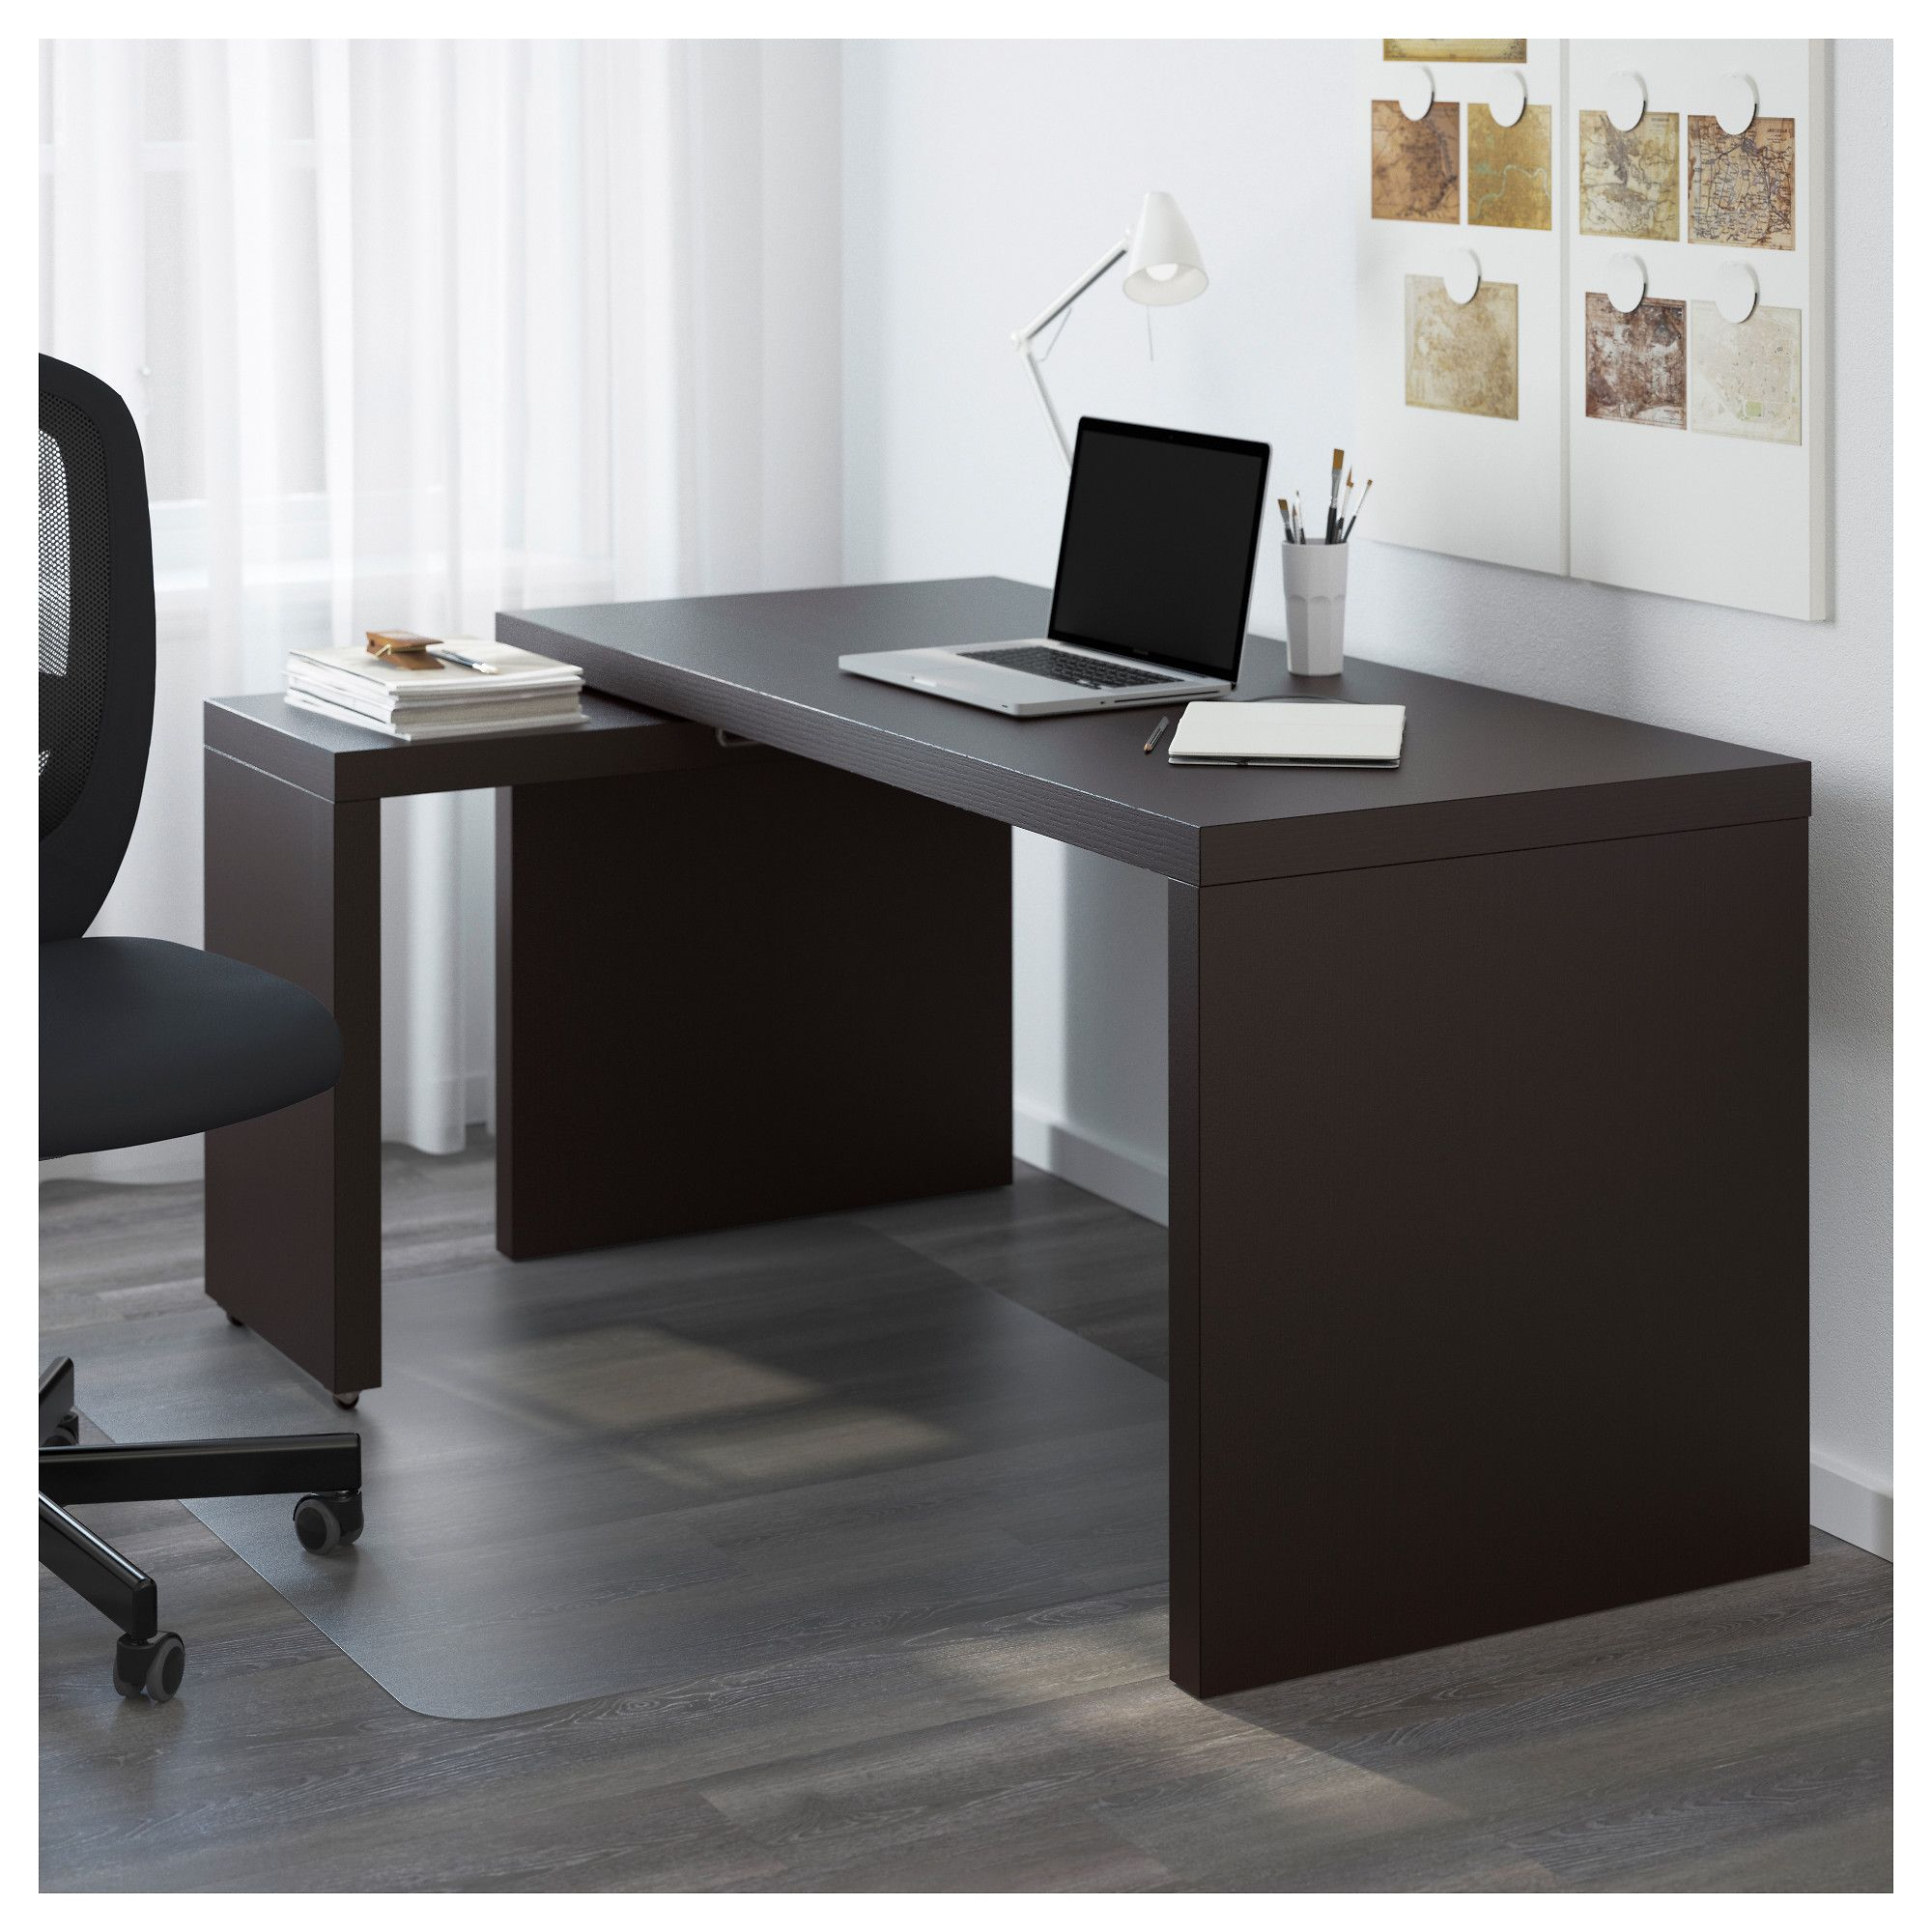 Fresh Home Furnishing Ideas And Affordable Furniture Ikea Malm Desk White Paneling Apartment Furniture